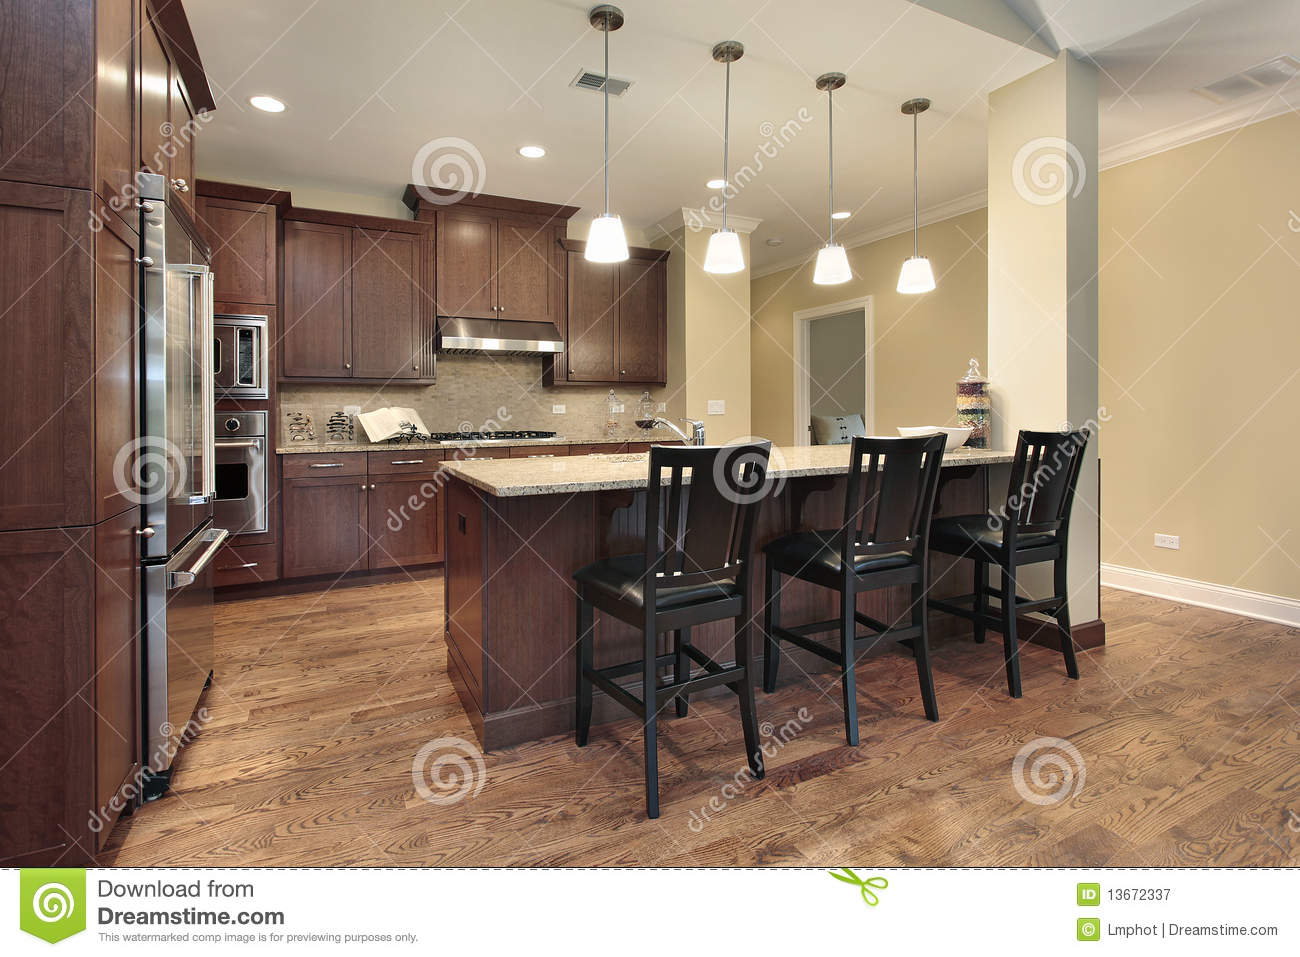 Kitchen With Breakfast Bar Royalty Free Stock Photography